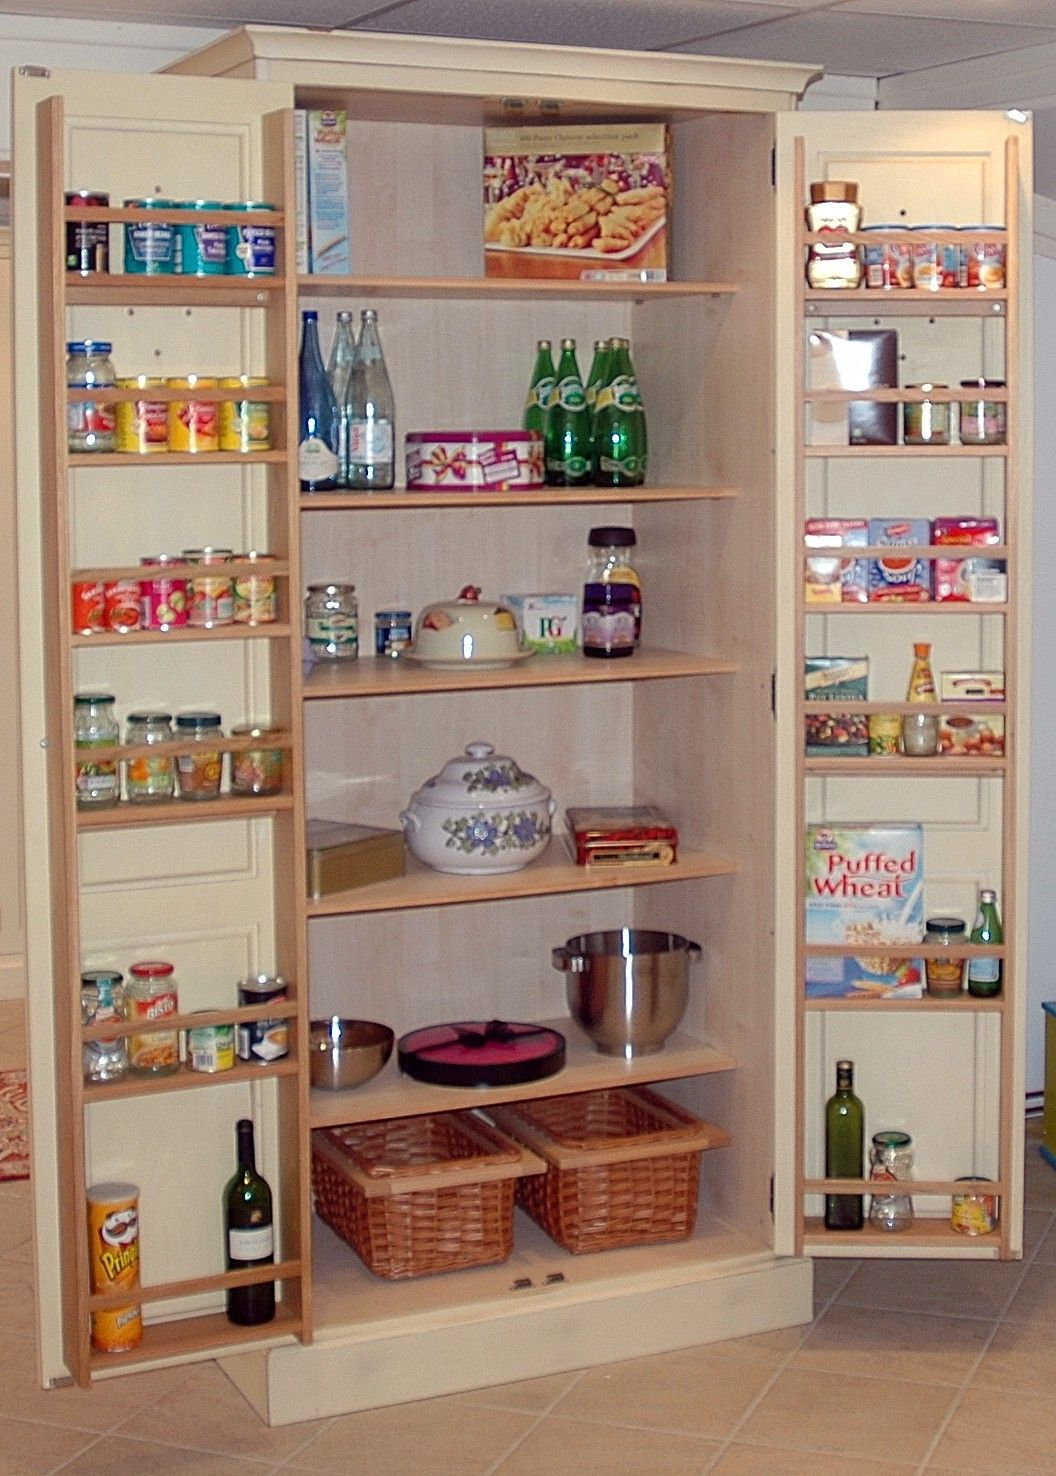 Diy Kitchen Cabinet Storage Ideas 13 Kitchen Storage Ideas For Small Spaces  Model Home Decor Ideas